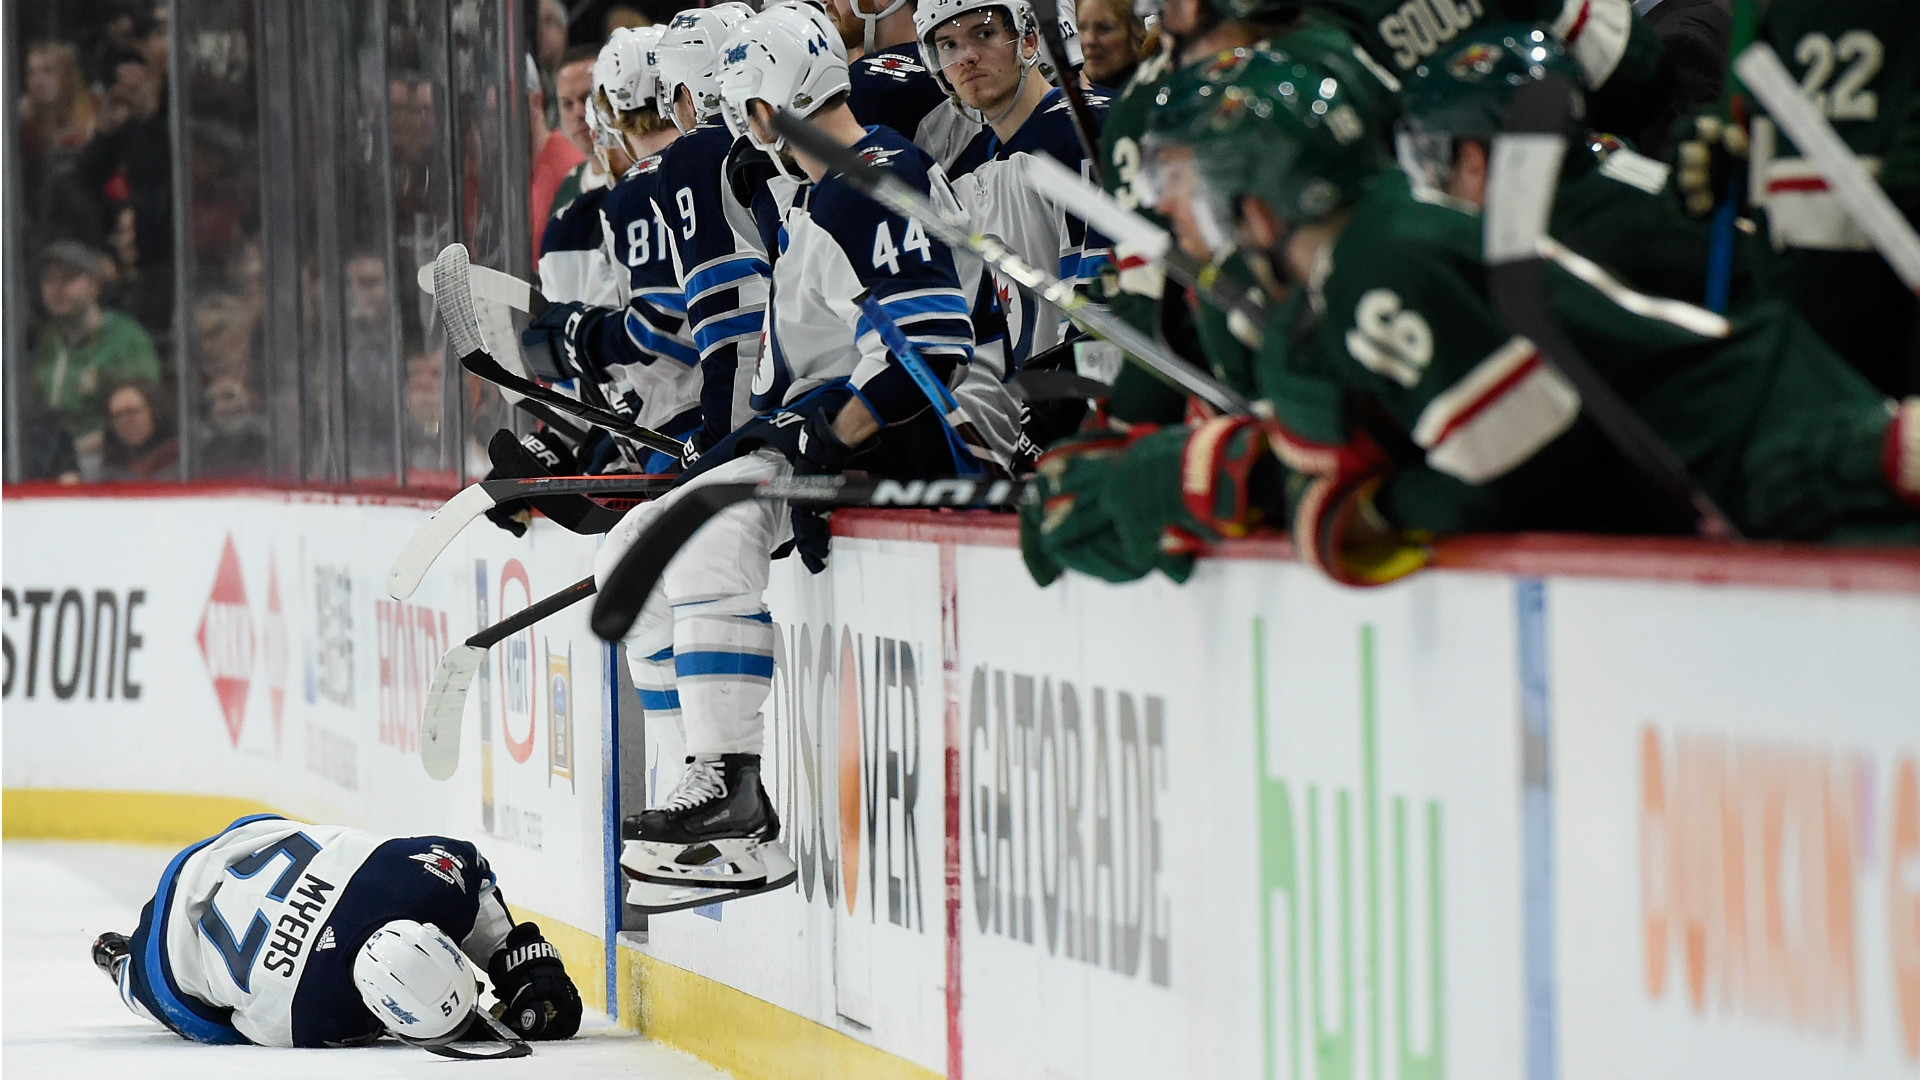 Morrow shines in Jets' first playoff victory over Wild